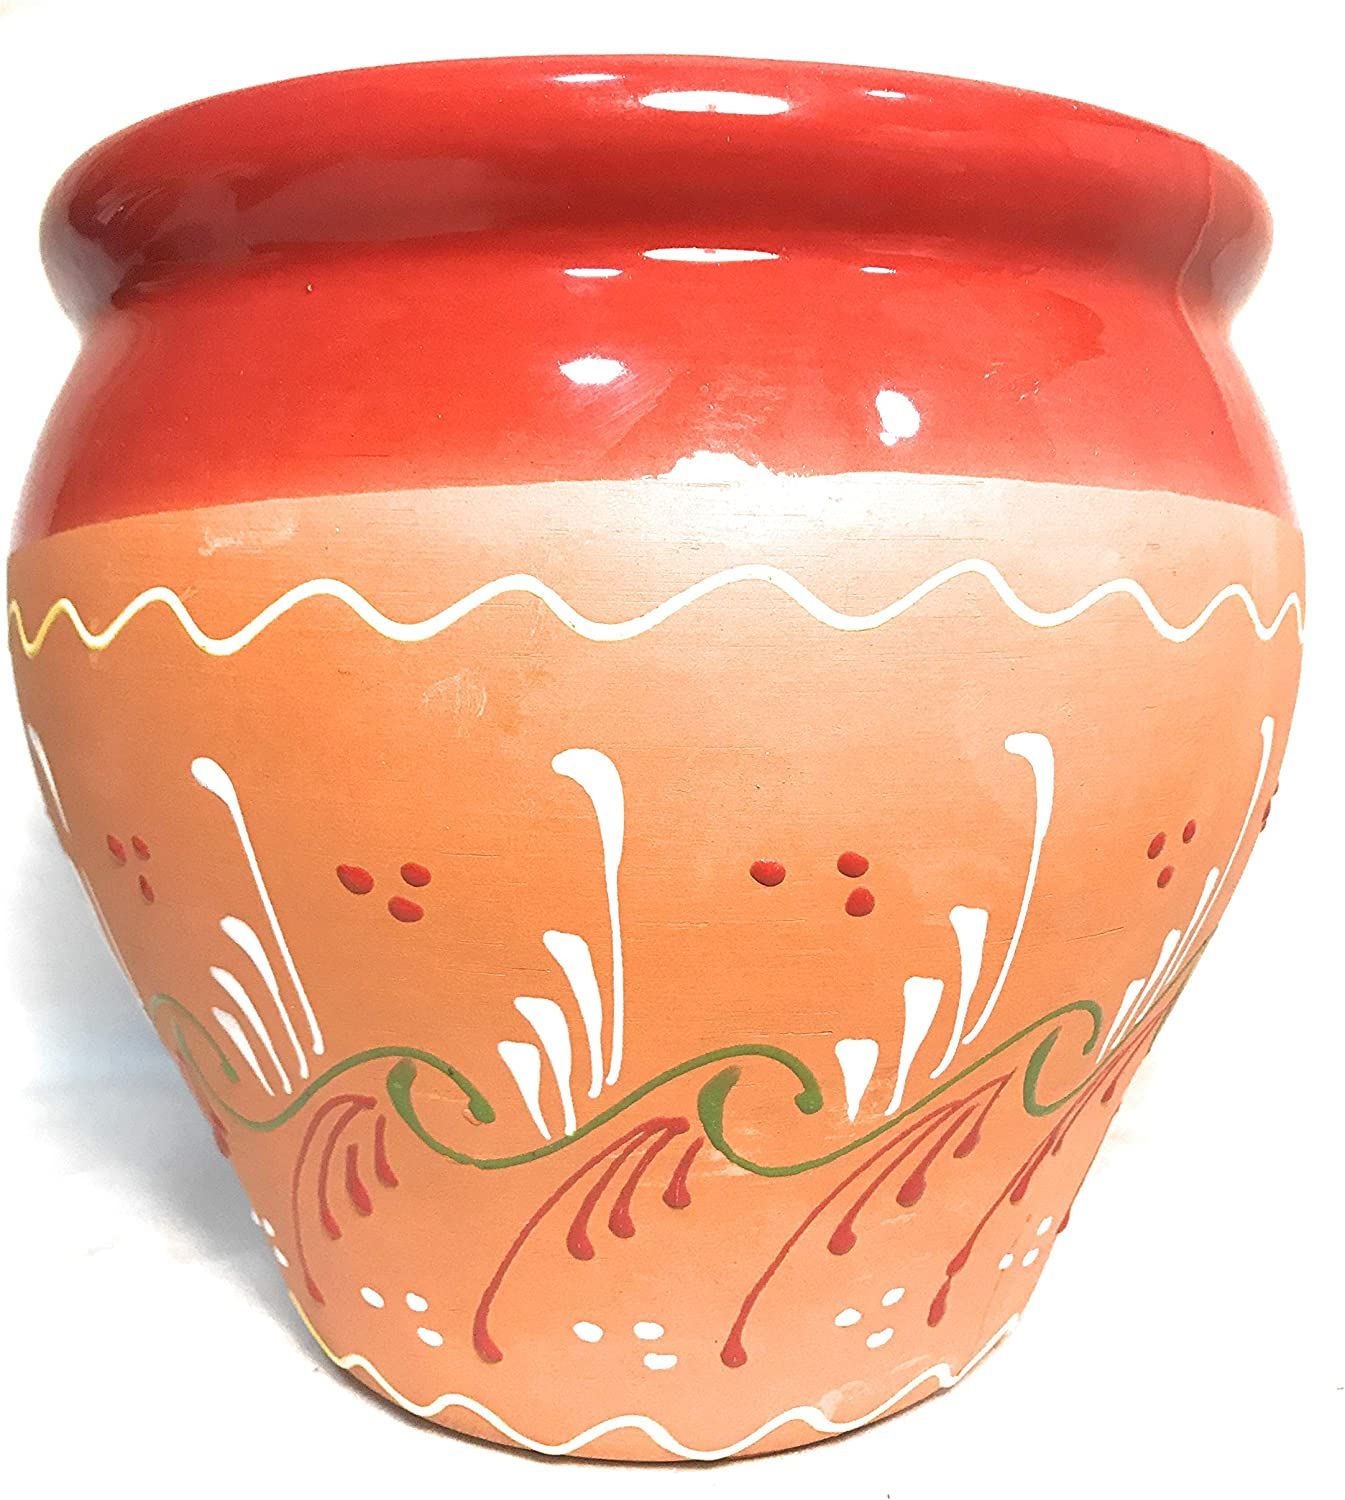 Funky Global Verano Ceramics Inca Bola Red Garden Outdoor Garden